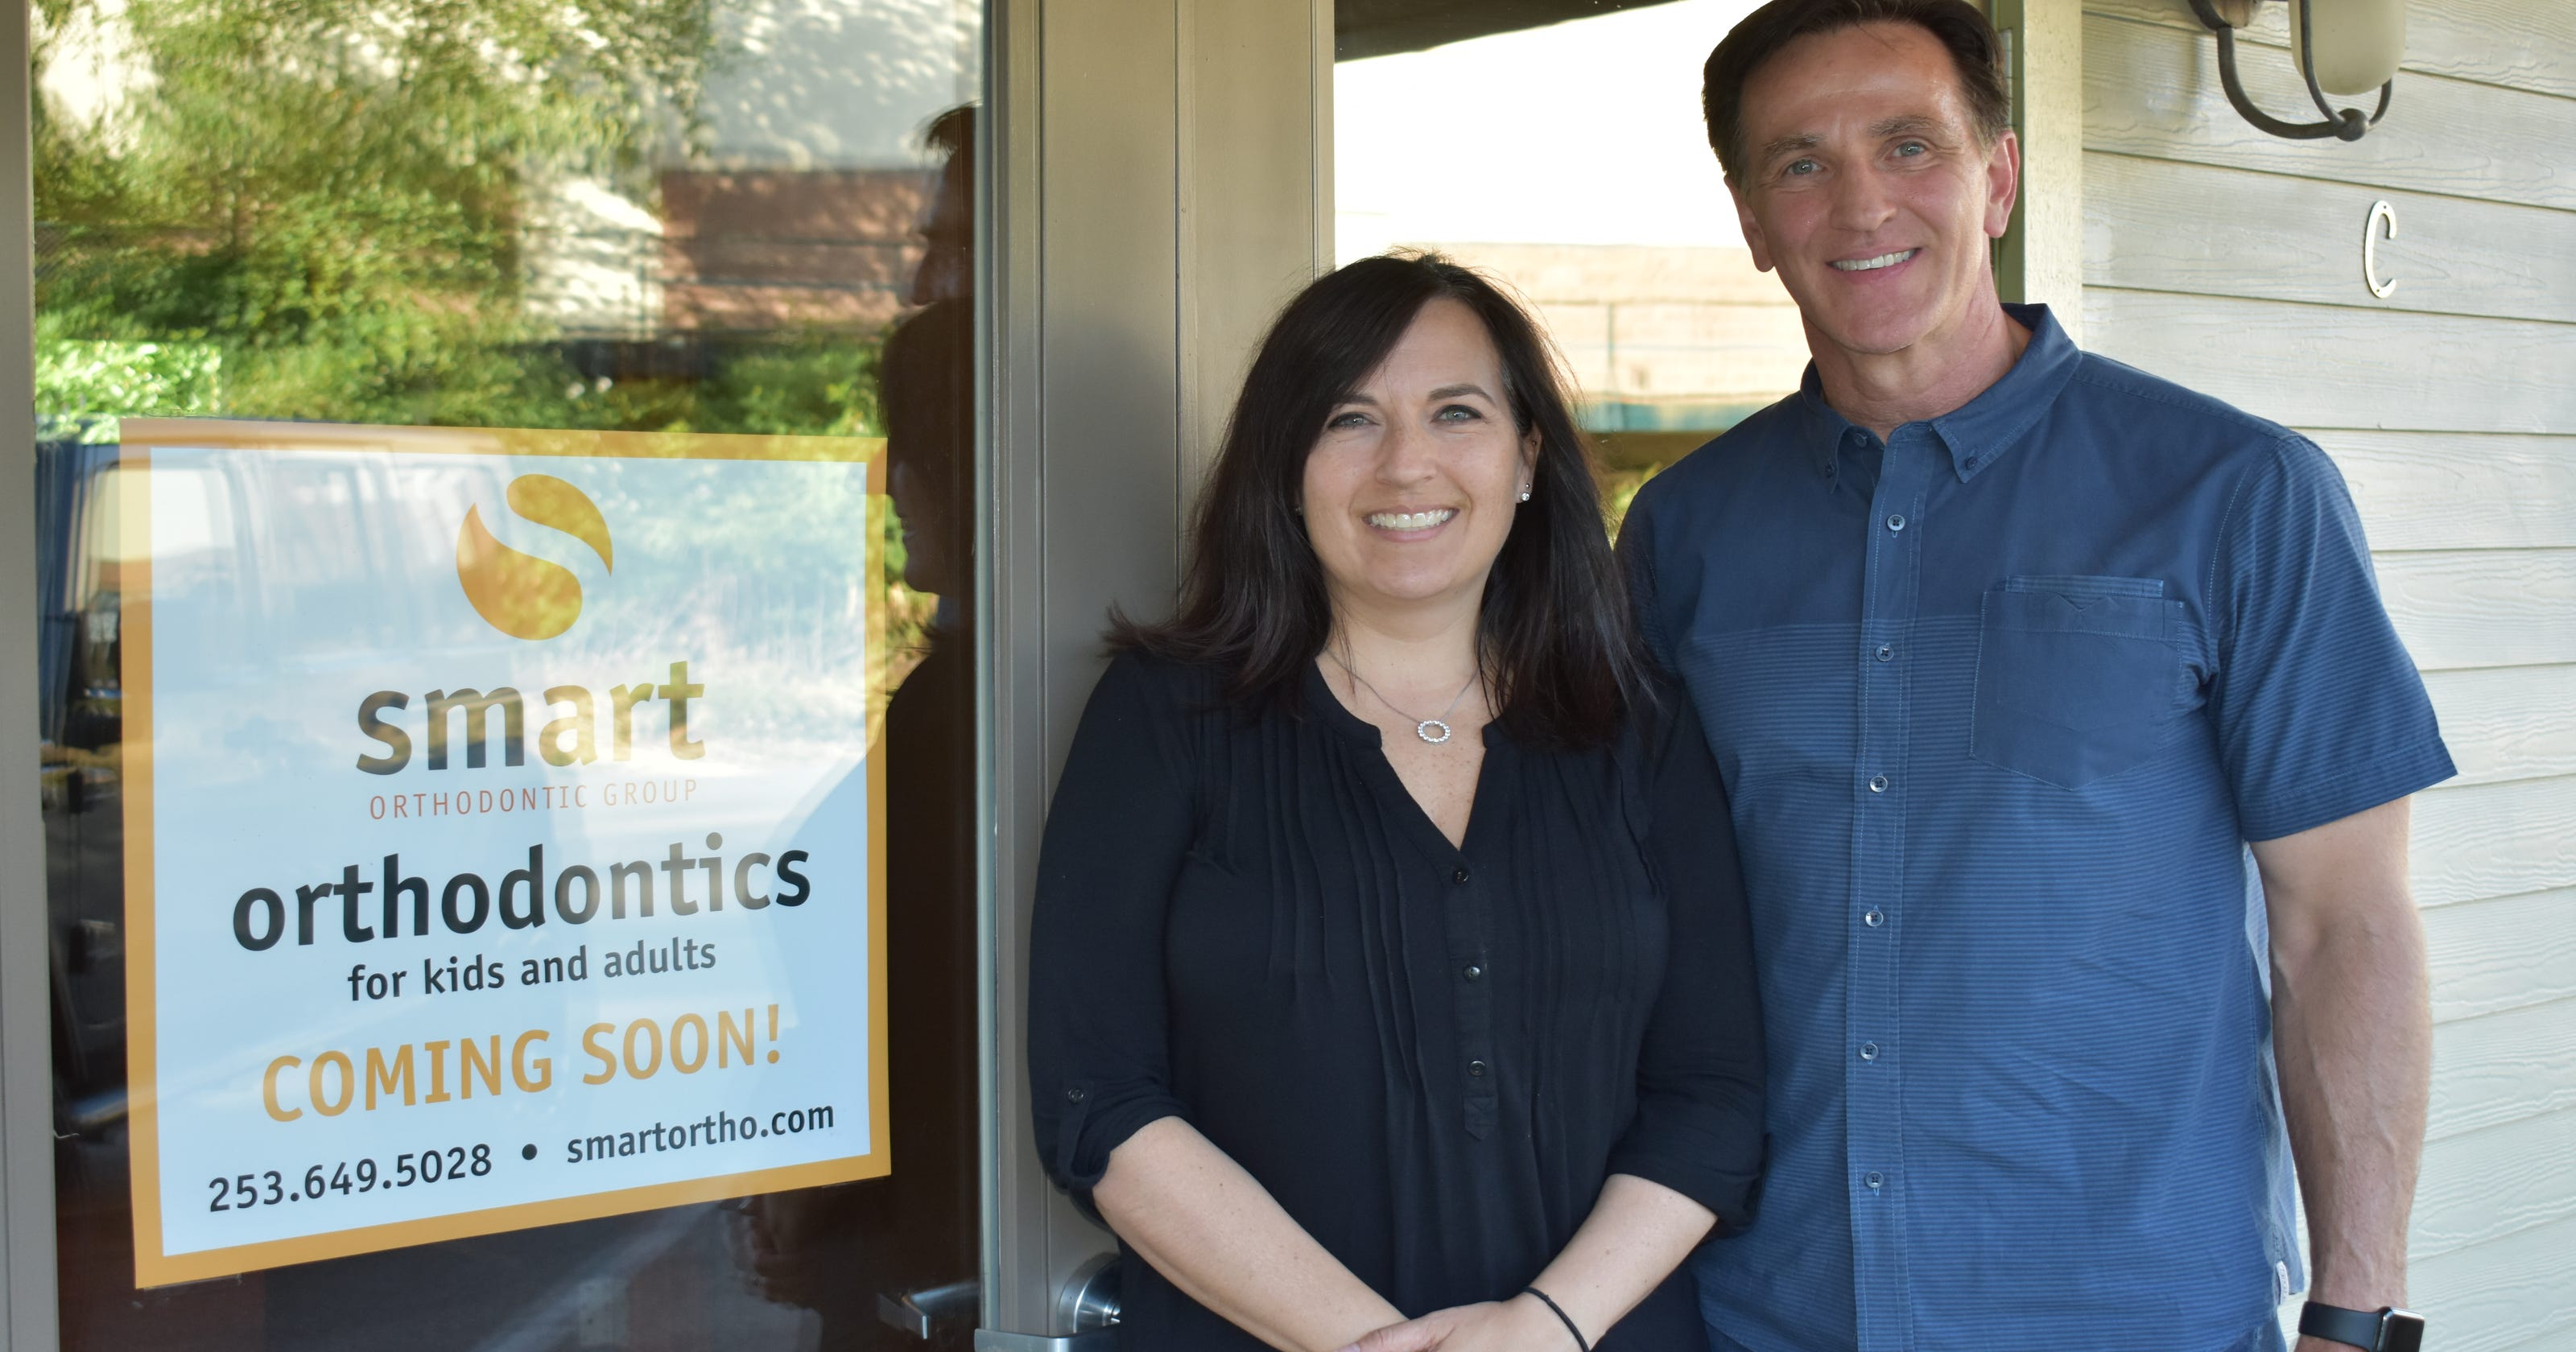 North Mason getting first orthodontist office in years